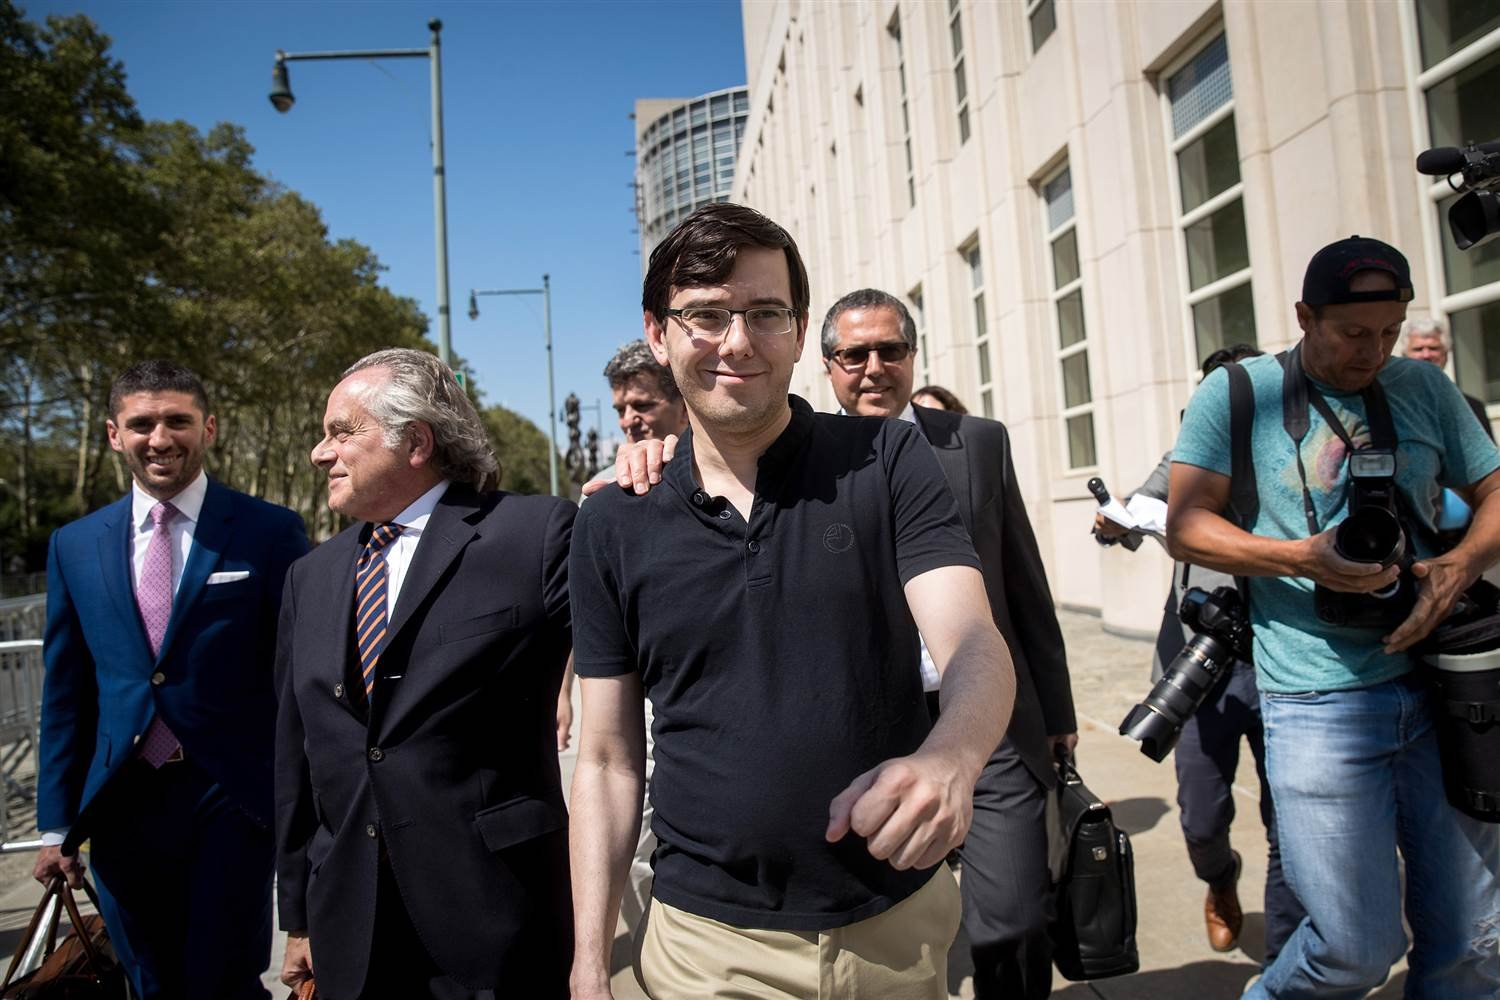 Prosecutors Seek to Revoke Shkreli's Bail, Citing Post About Clinton